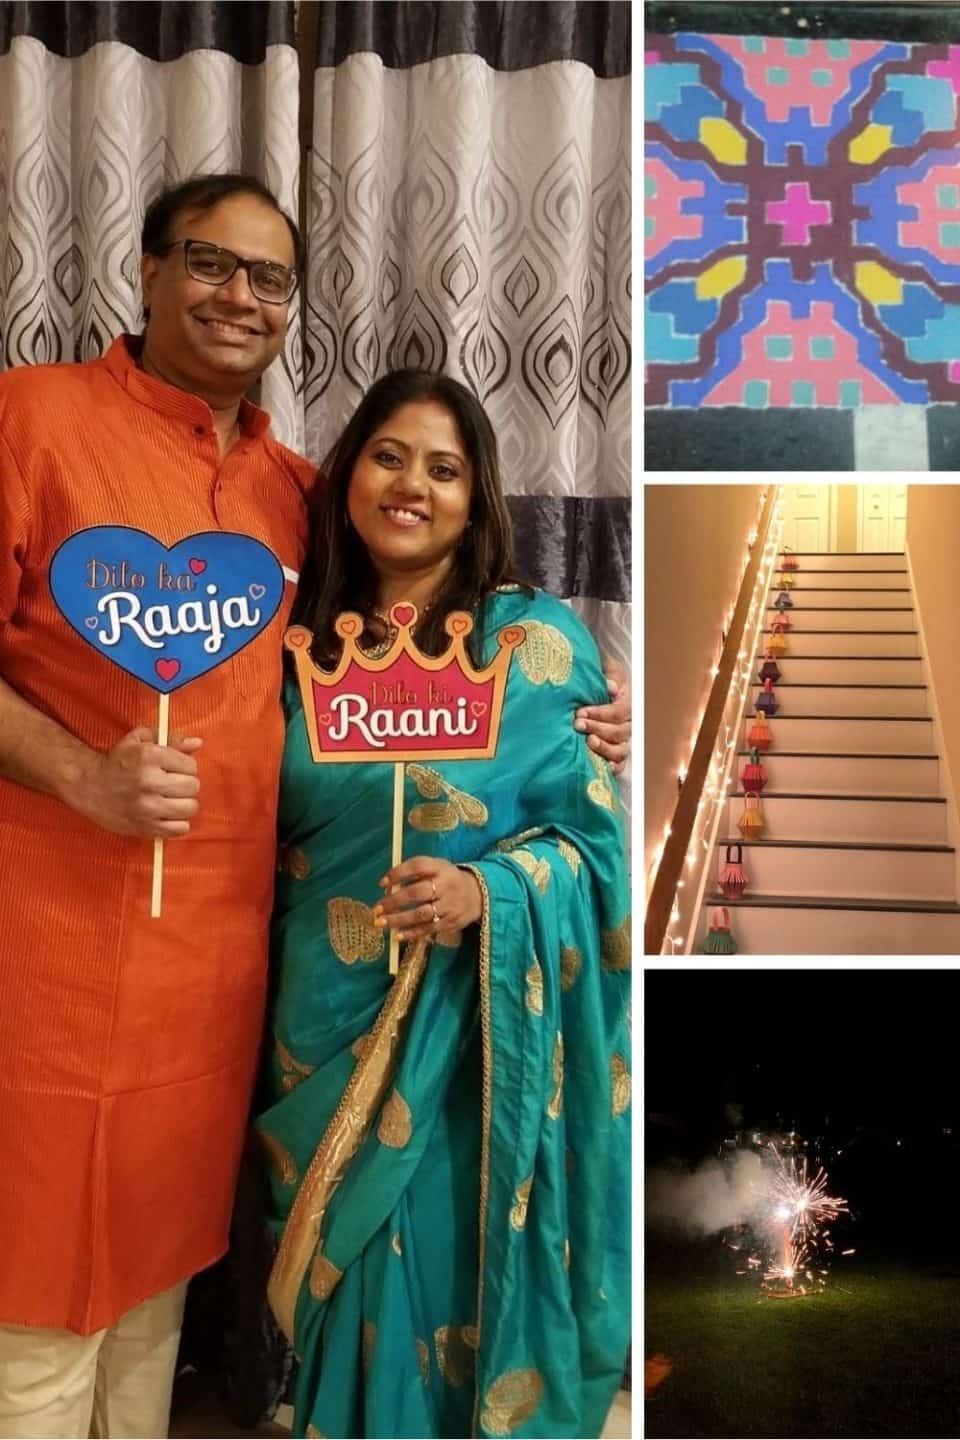 4 image collage of diwali festival being celebrated in Indian homes